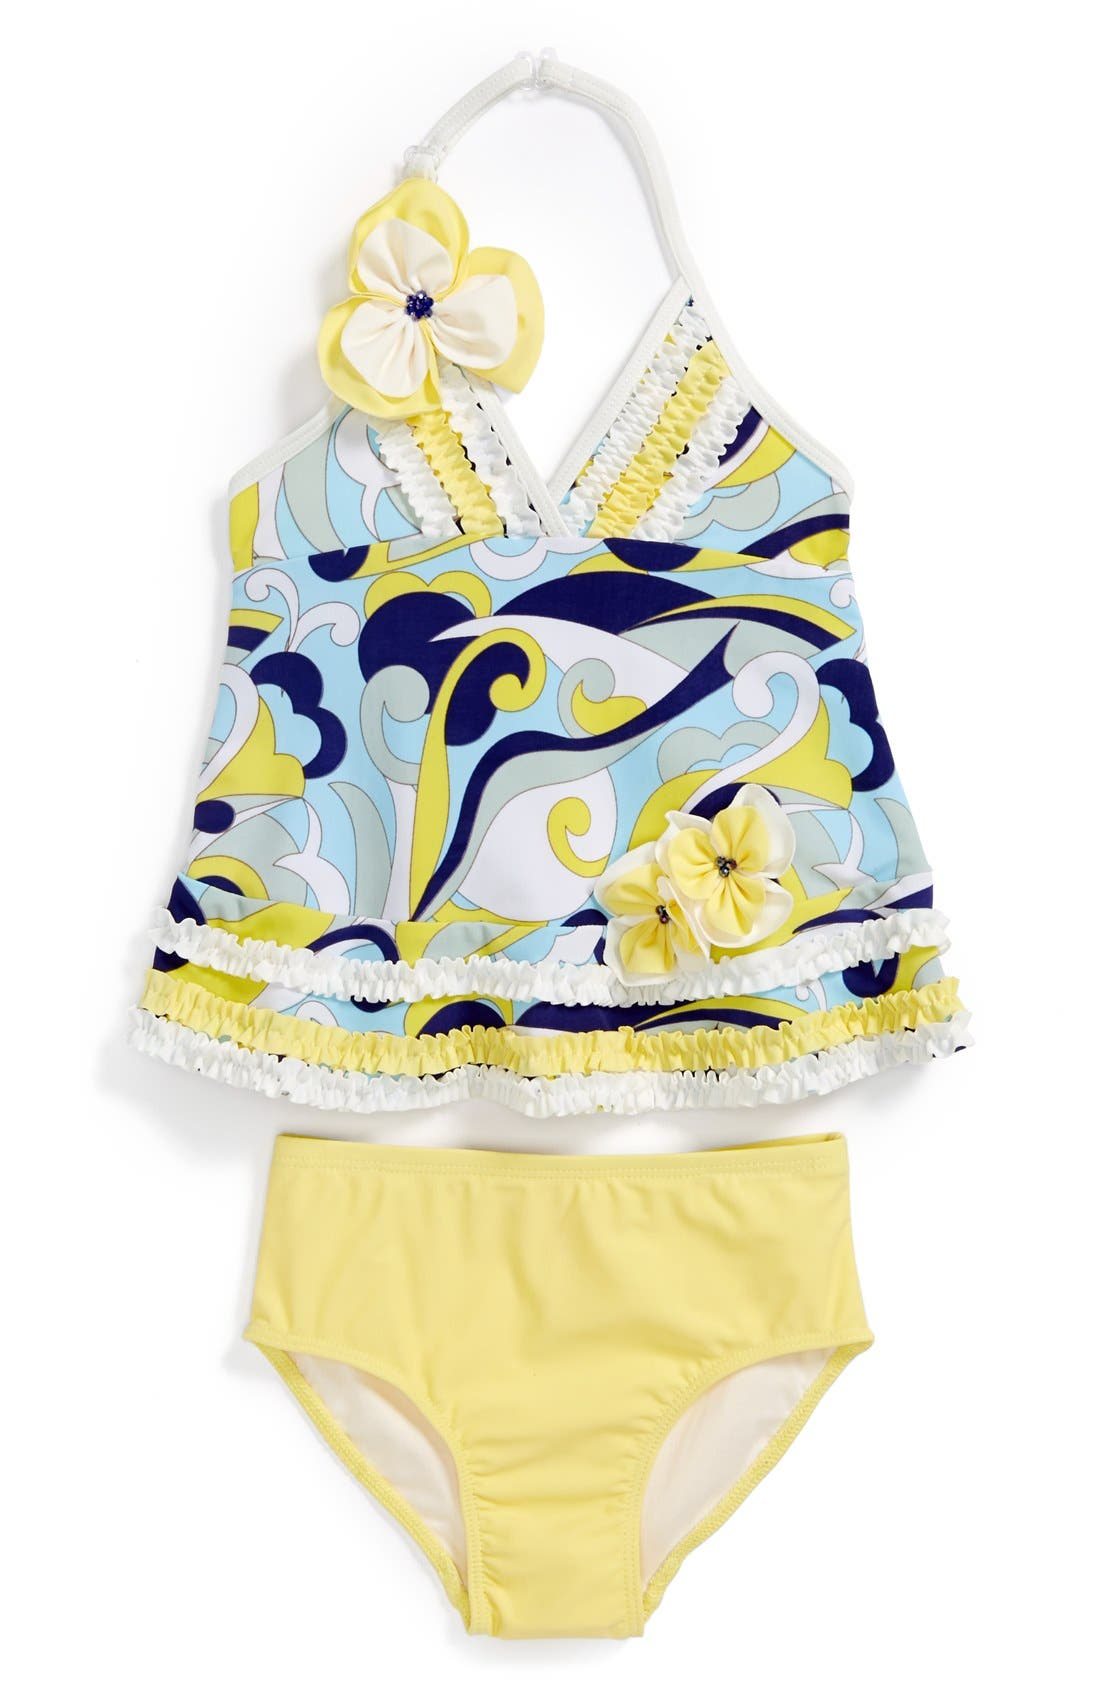 Main Image - Isobella & Chloe 'Caribbean Current' Two-Piece Swimsuit (Toddler Girls)